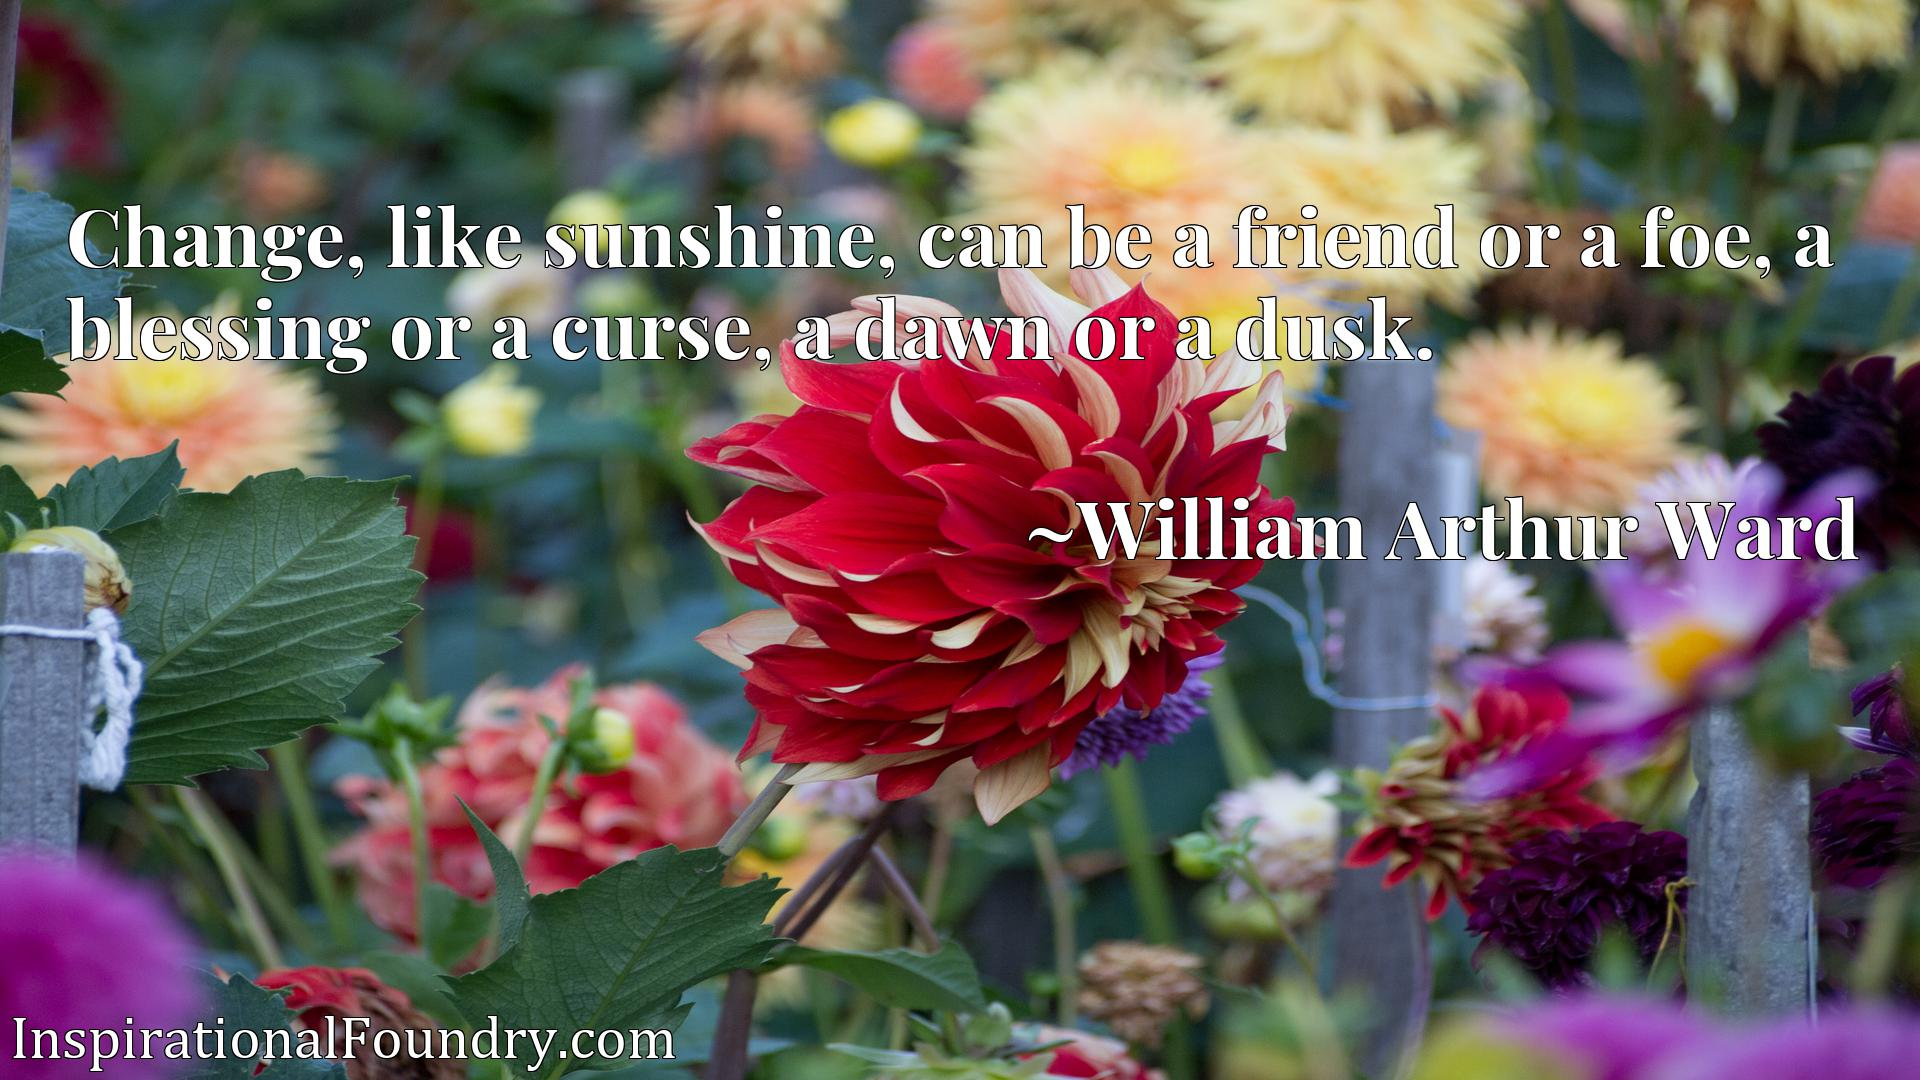 Quote Picture :Change, like sunshine, can be a friend or a foe, a blessing or a curse, a dawn or a dusk.